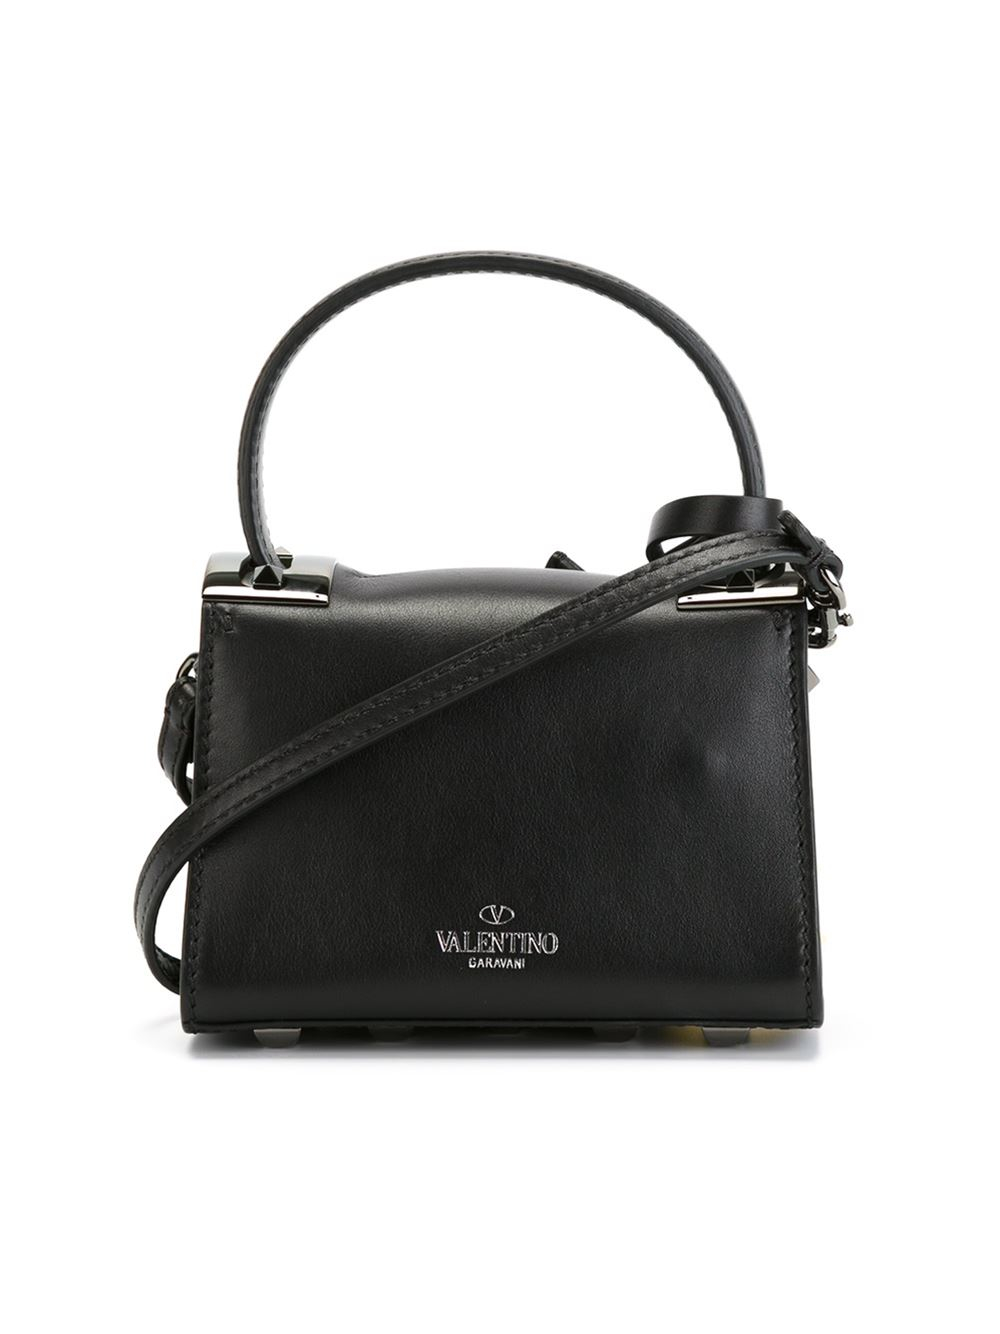 7548d377e35 Gallery. Previously sold at: Farfetch · Women's Valentino Rockstud Bags